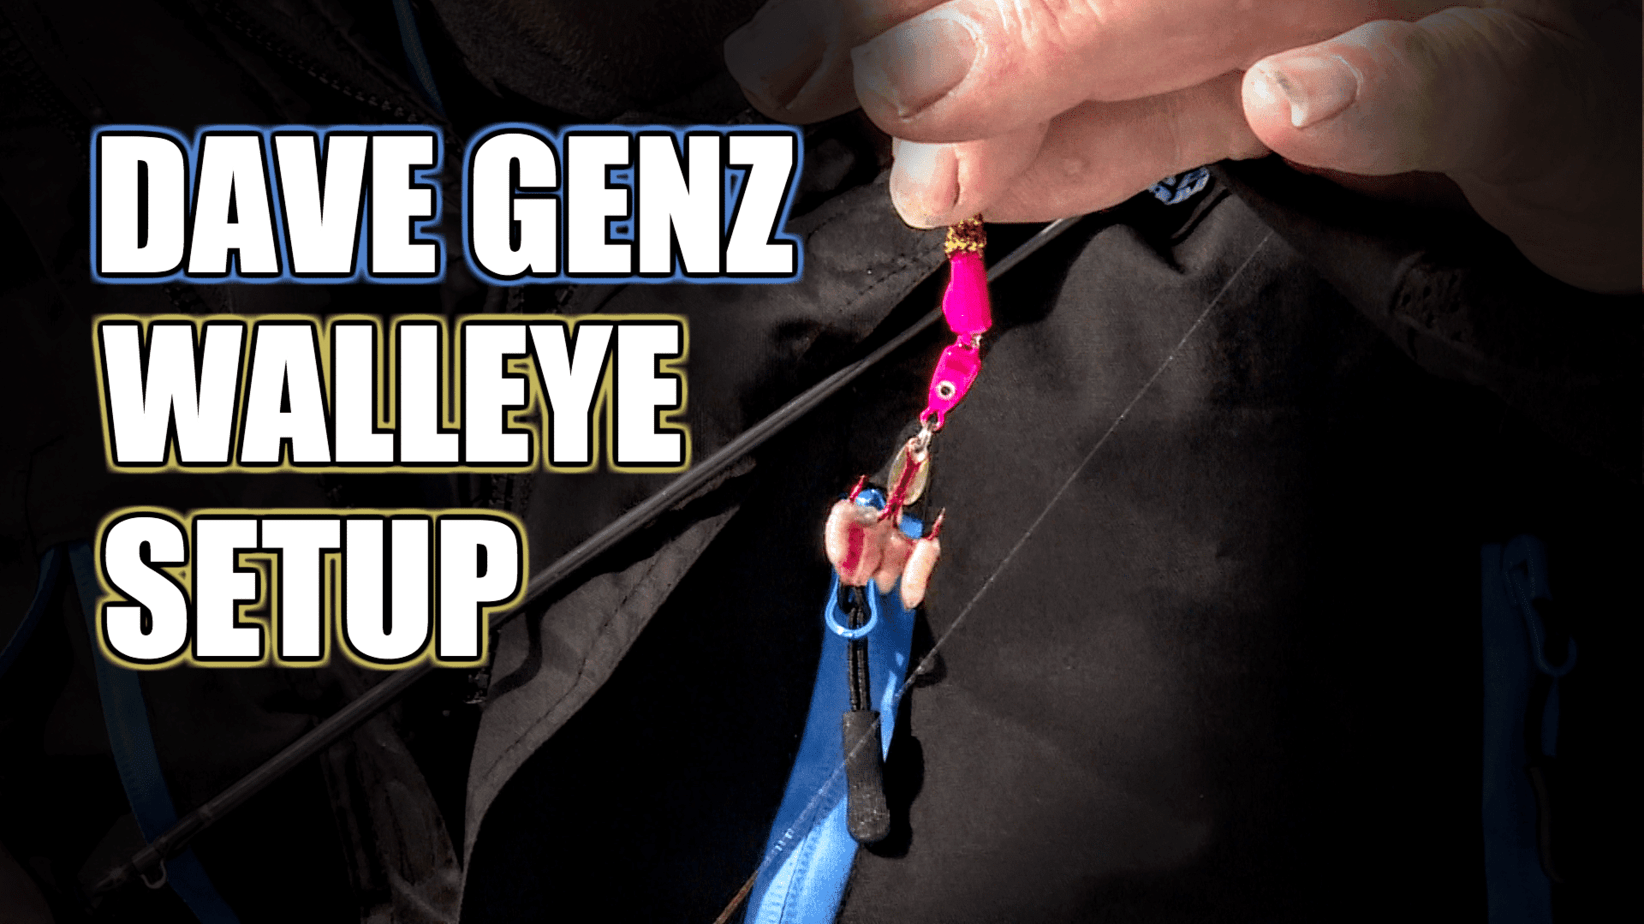 Dave Genz Walleye Fishing Setup